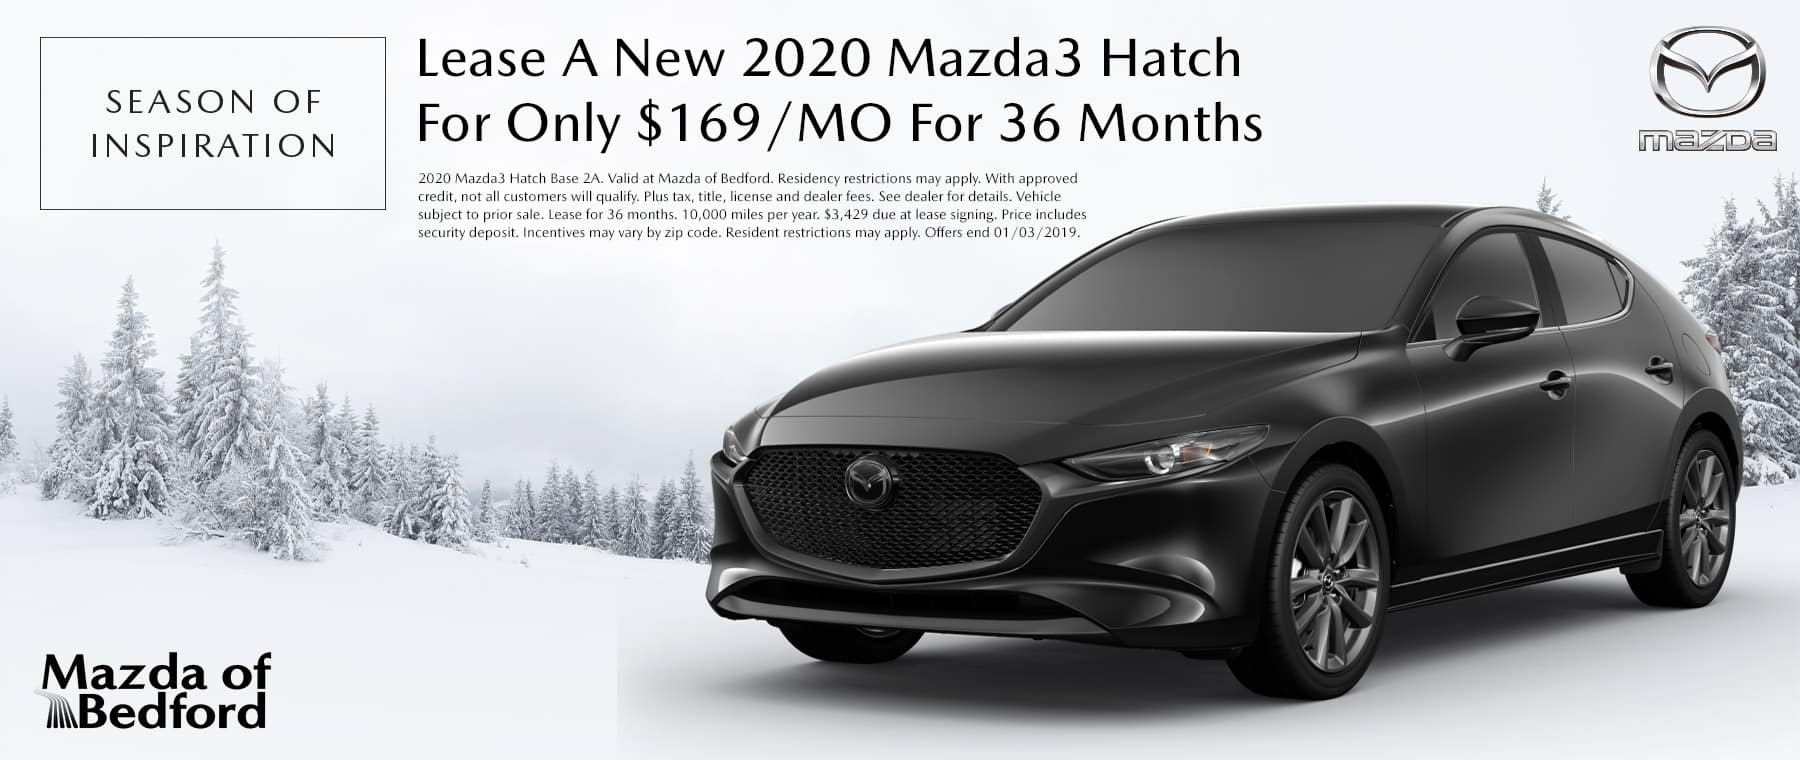 2020 Mazda3 Hatch - Mazda of Bedford - Bedford, OH